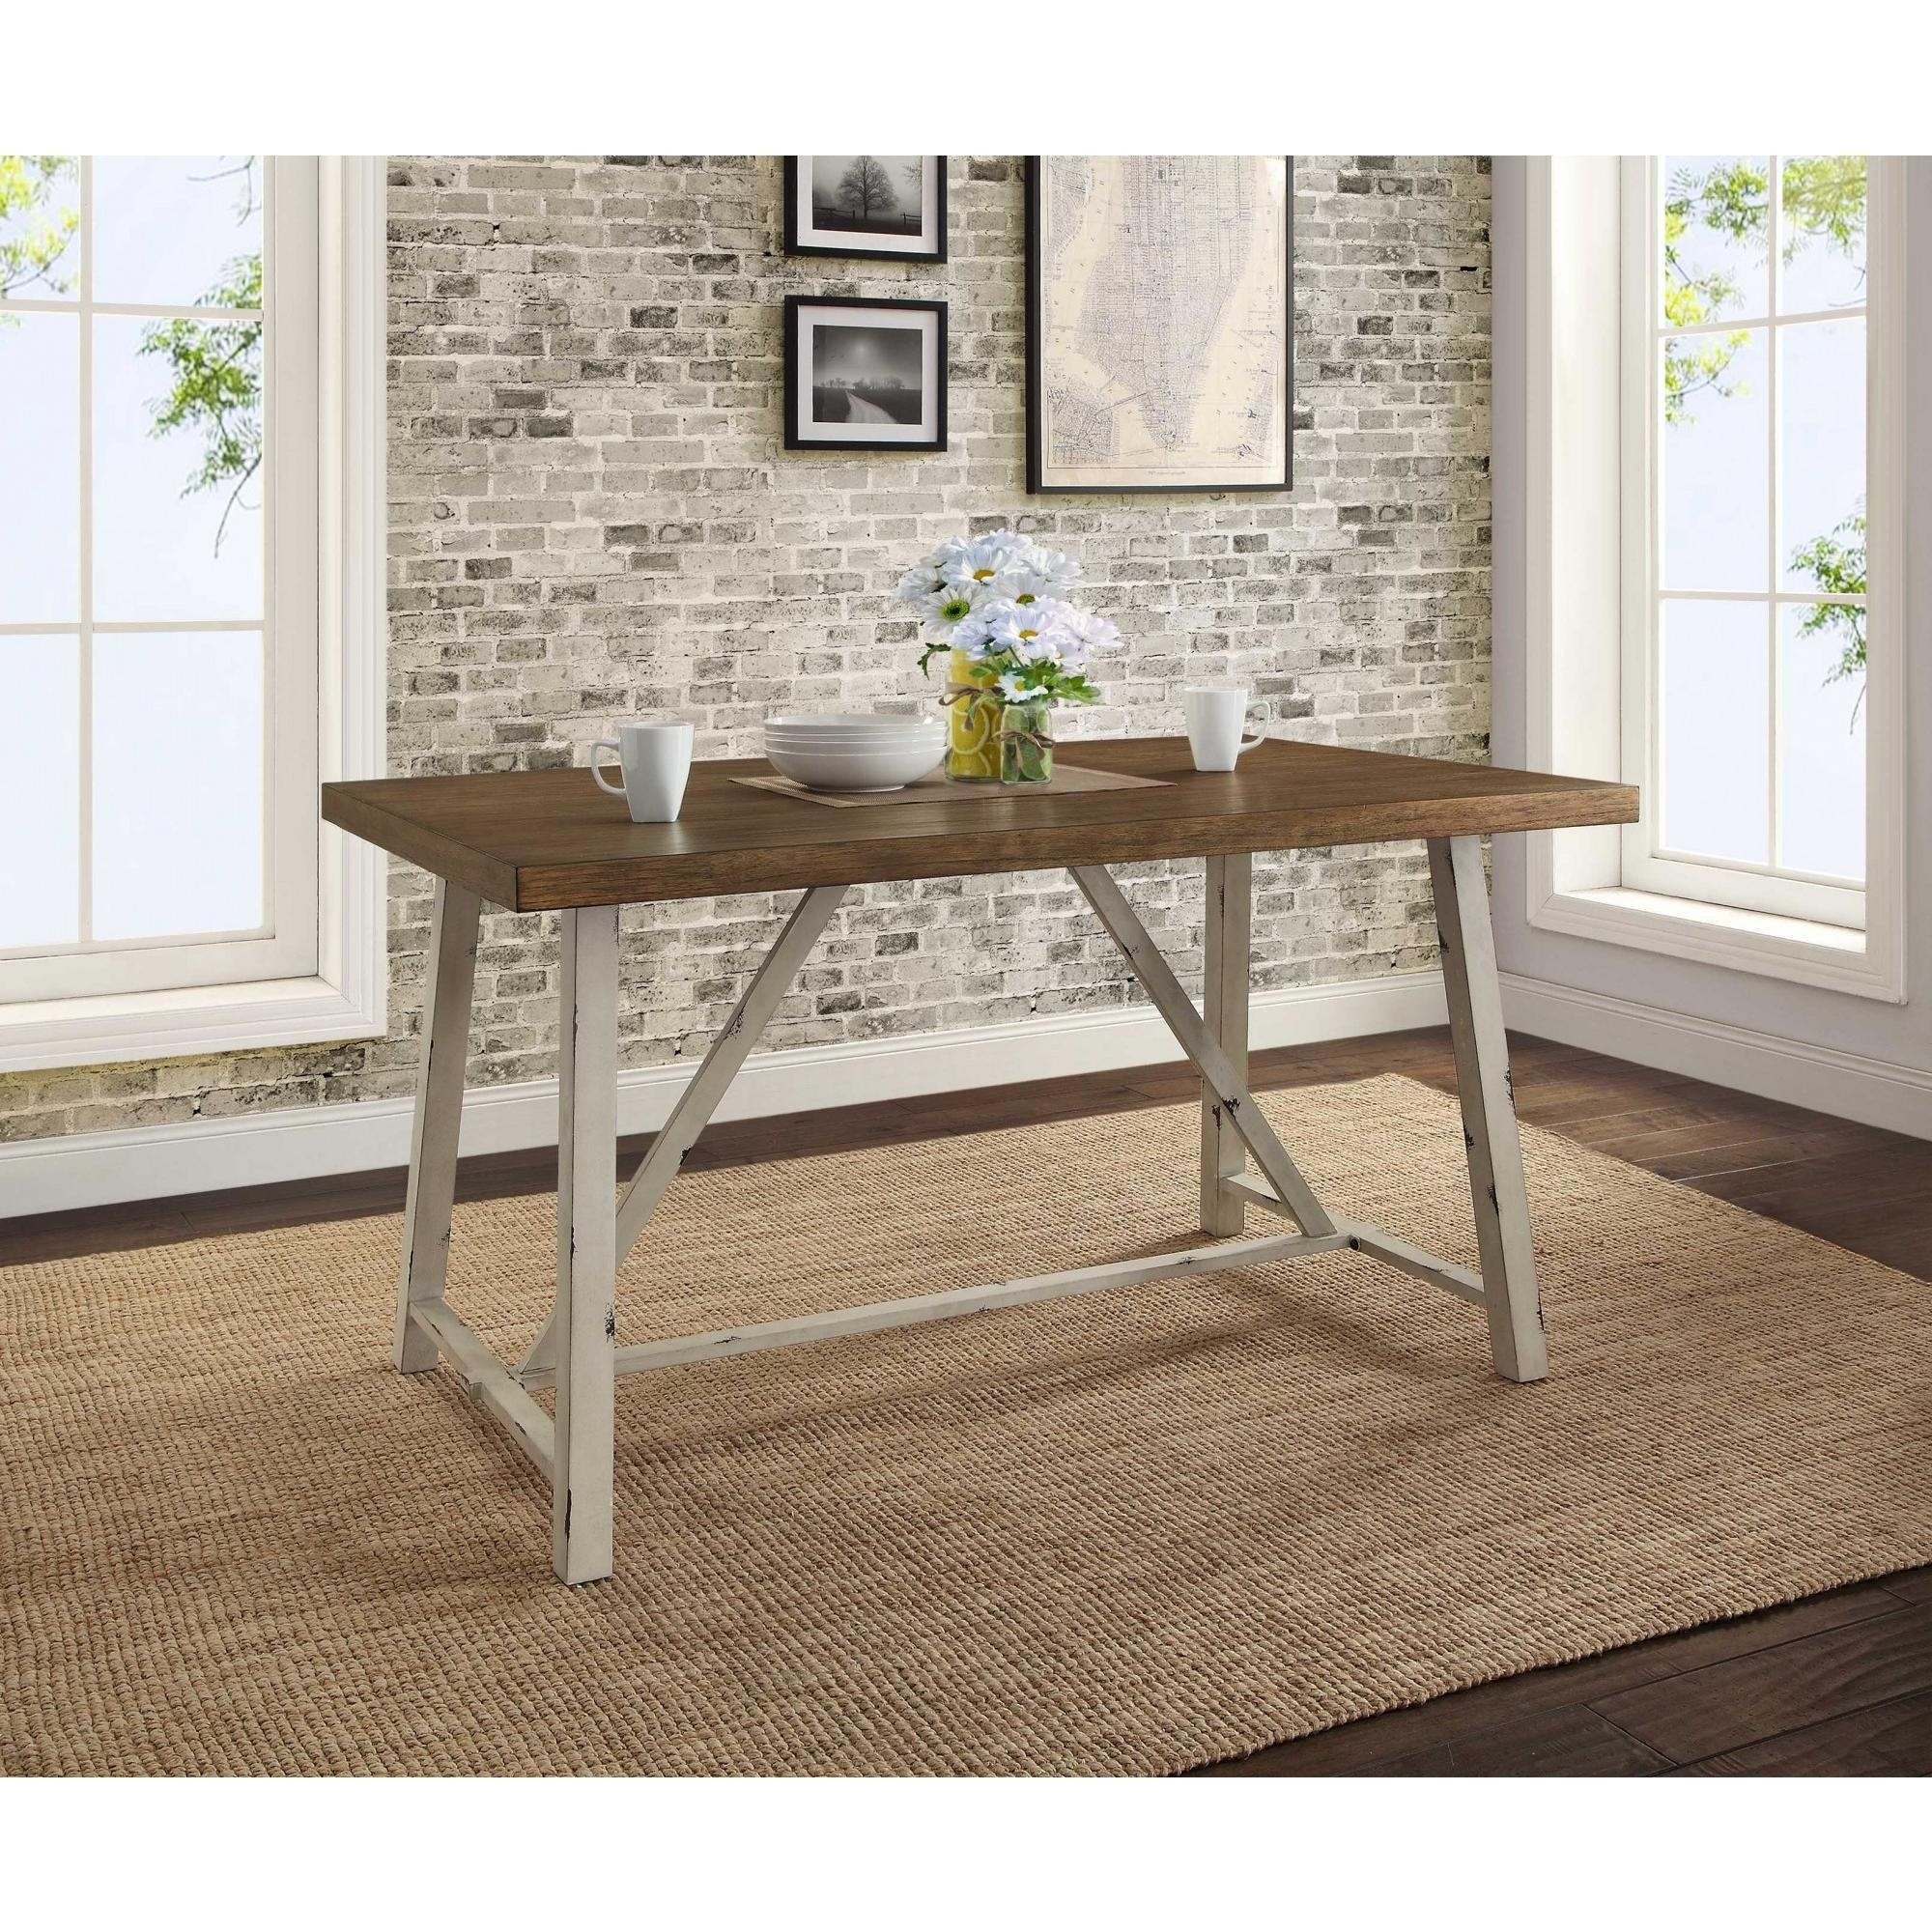 Better Homes & Gardens Collin Wood And Metal Dining Table With Trendy Dining Tables With White Legs And Wooden Top (View 3 of 25)